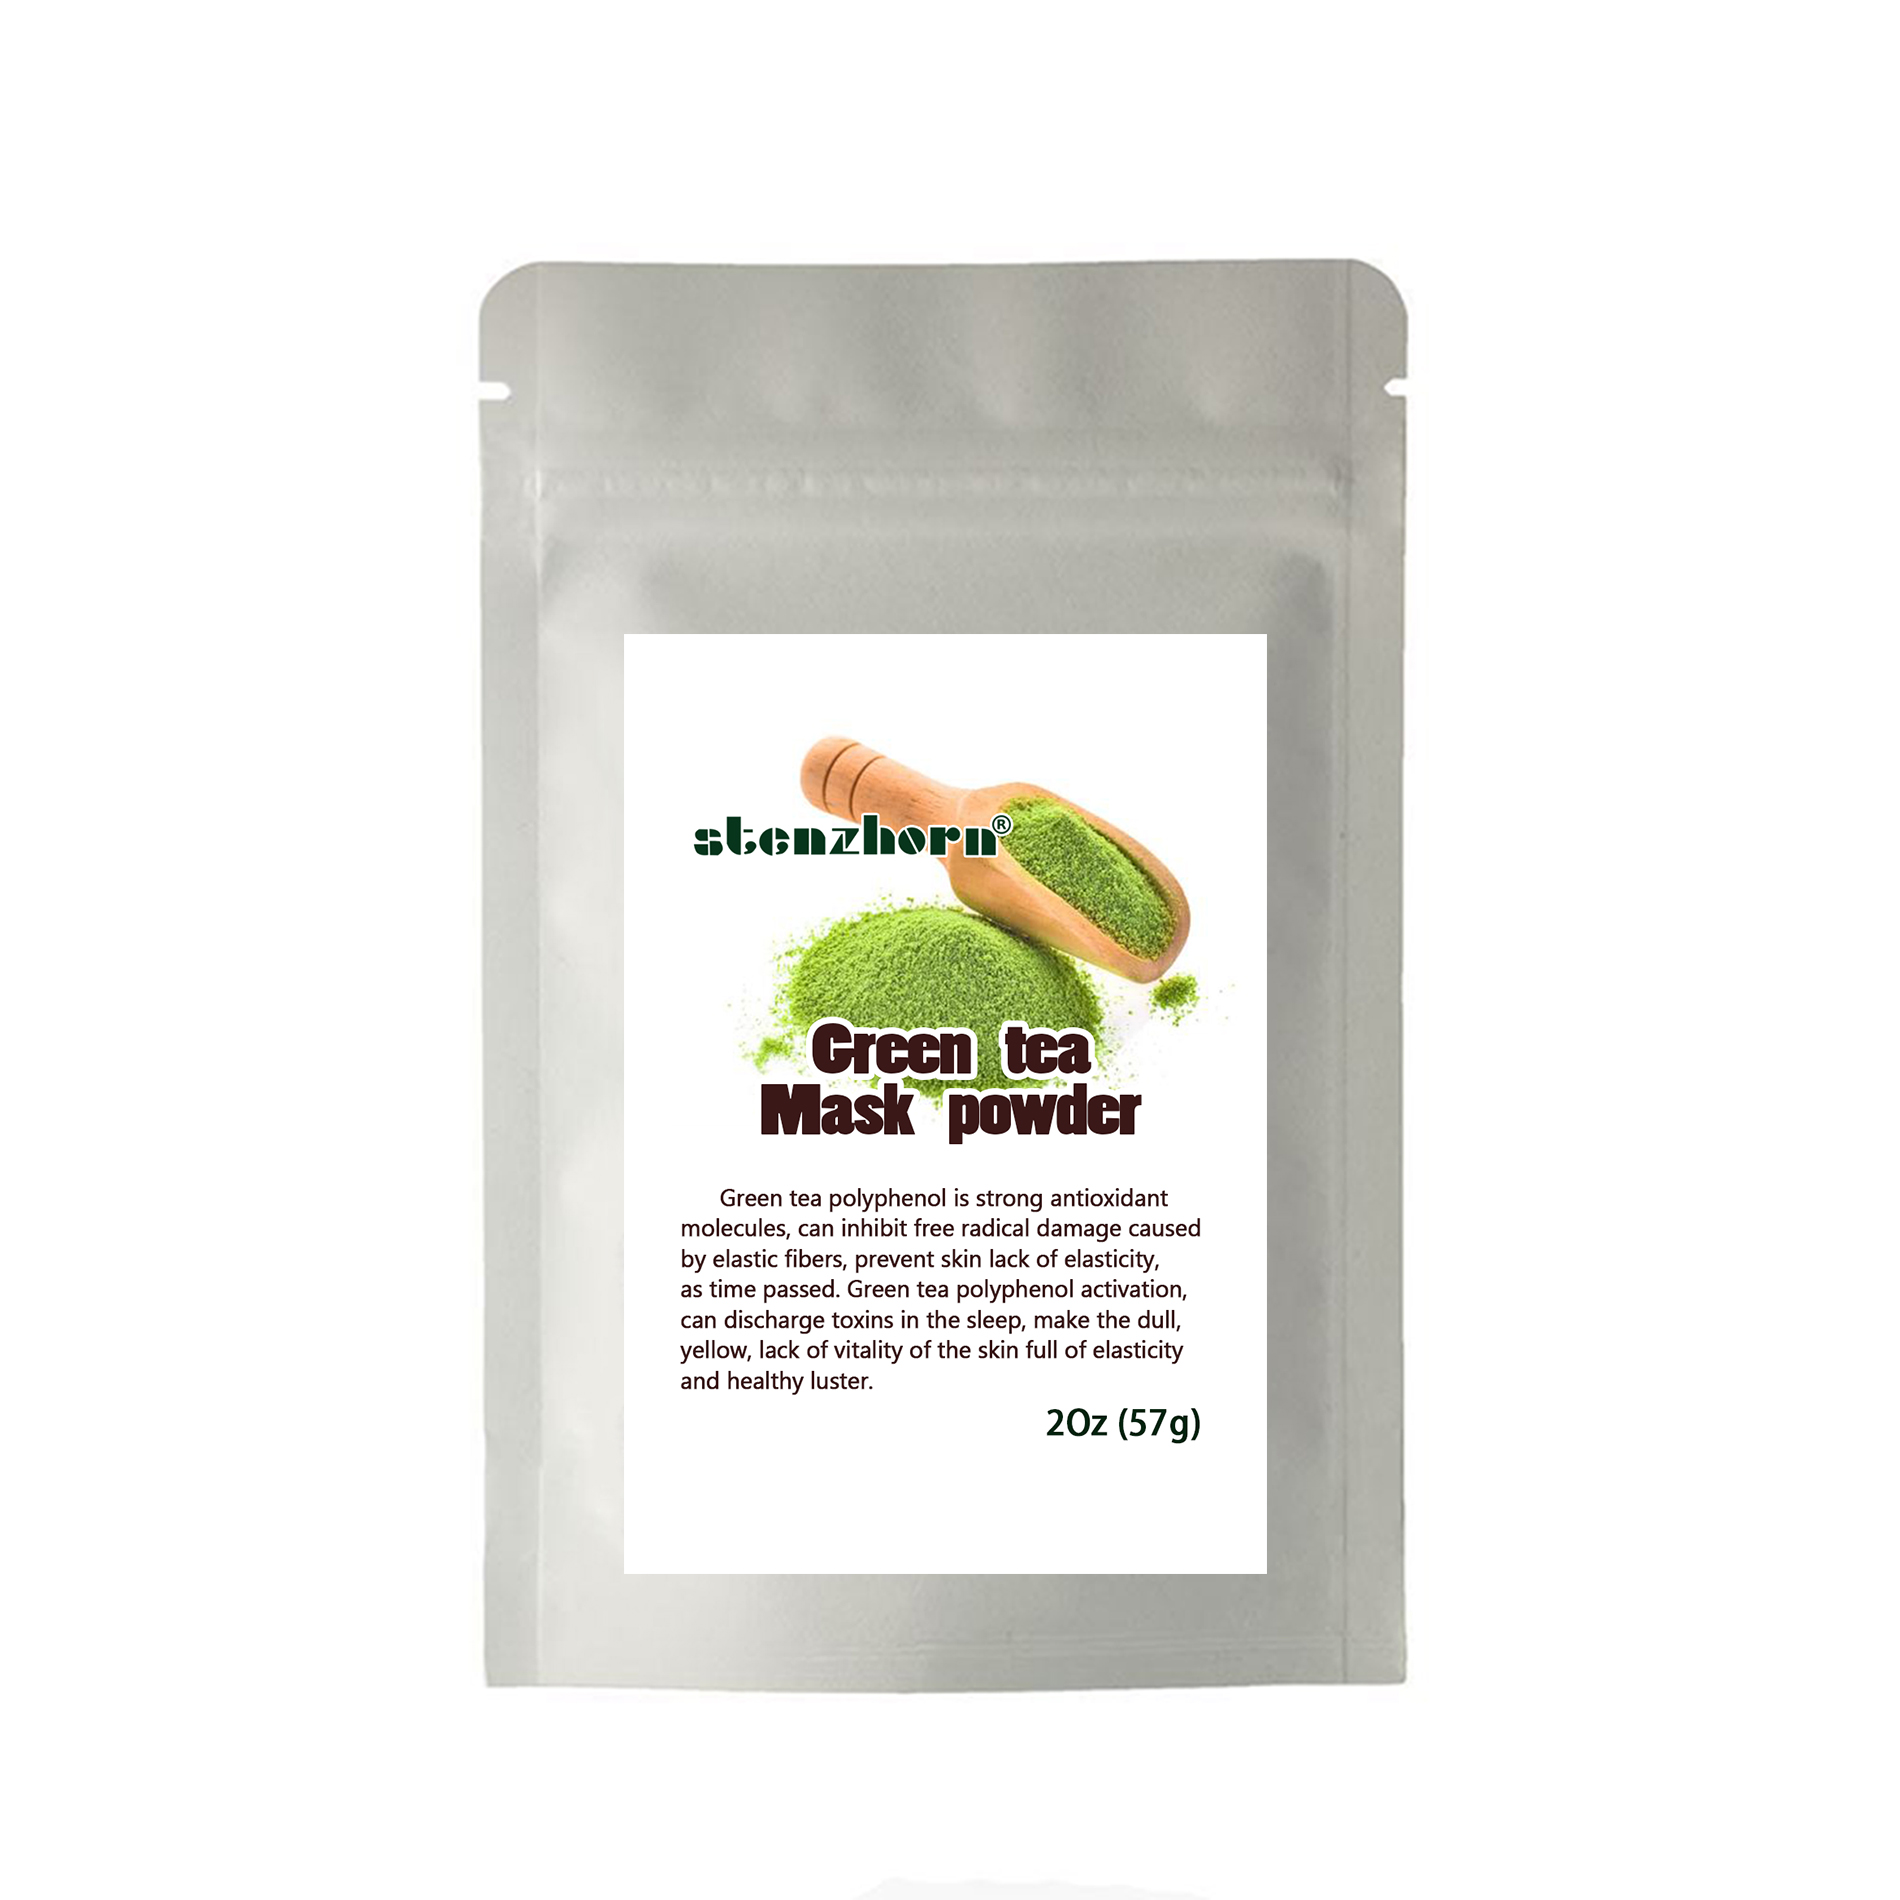 Hot Selling Matcha Green Tea Rejuvenation Soft Mask Powder